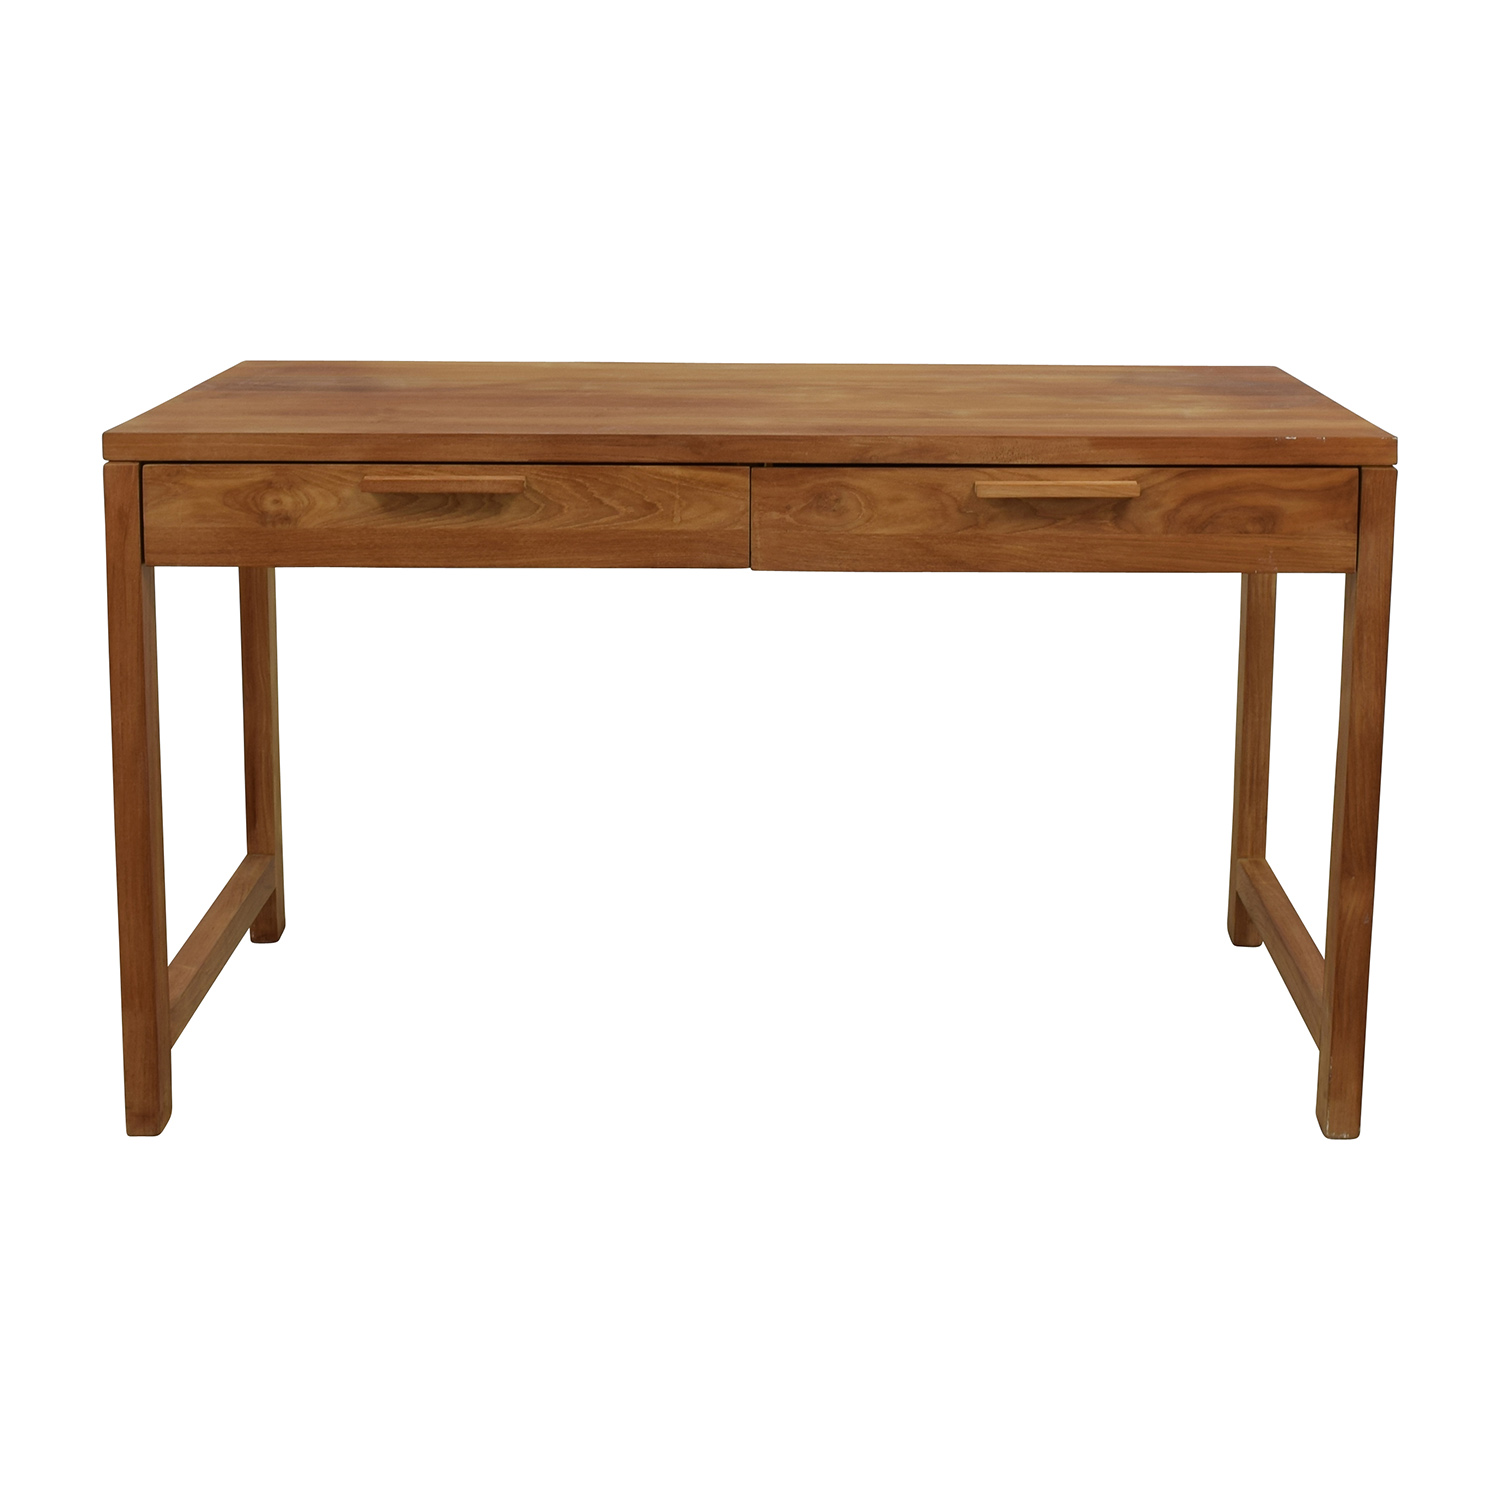 Room and Board Room & Board Two-Drawer Teak Desk discount